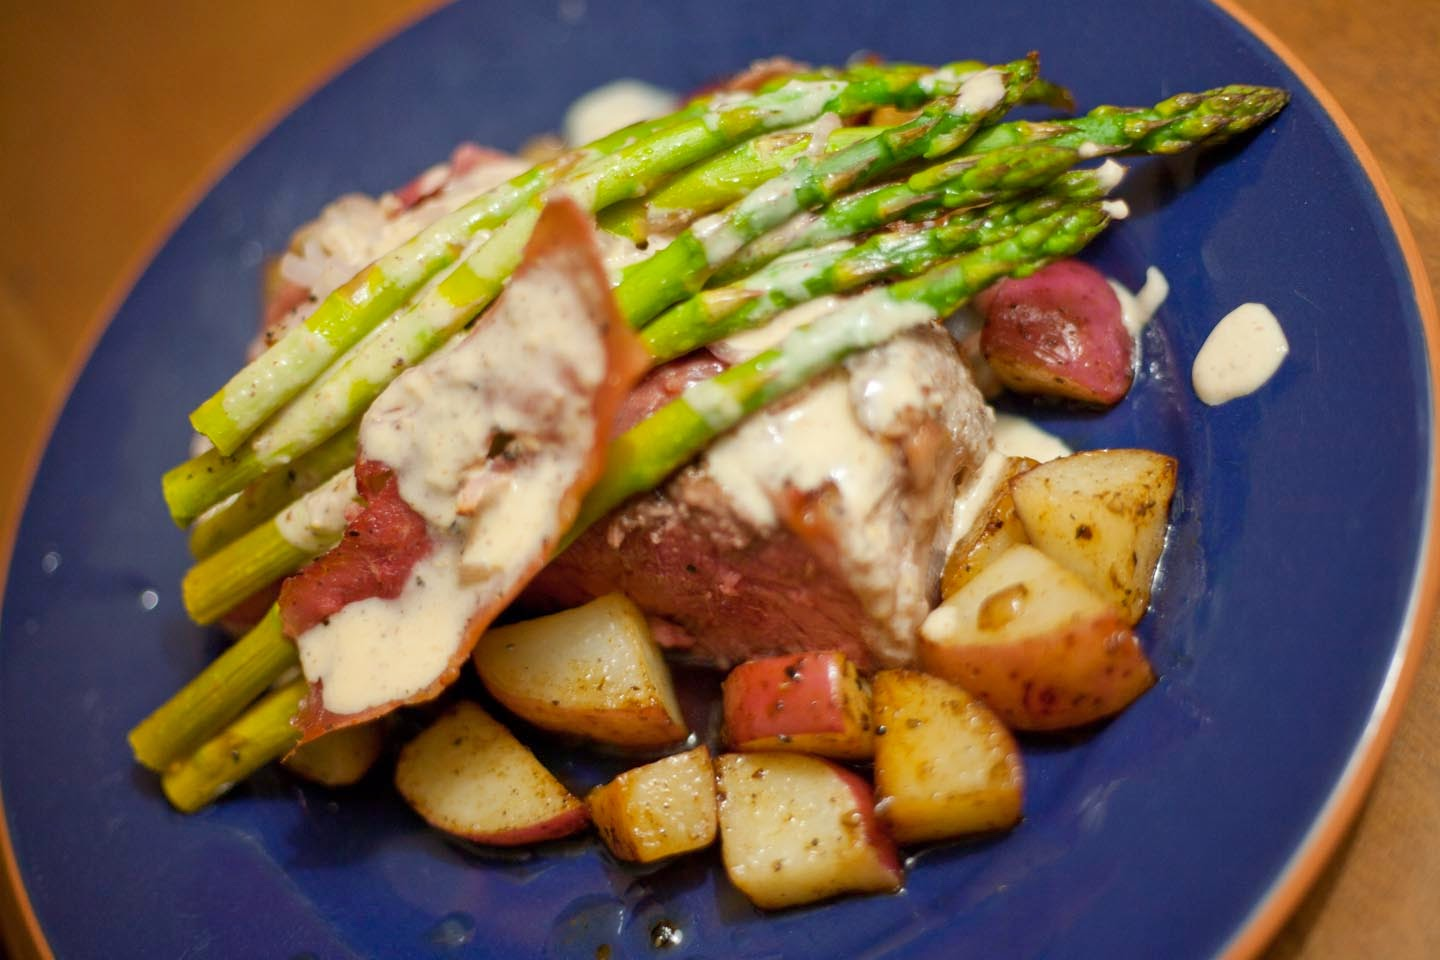 Red Potatoes That Appear To Be Cooked, Asparagus And  Shallots With What Looks To Be A Mustard Sauce And Prosciutto Or Some Other  Kind